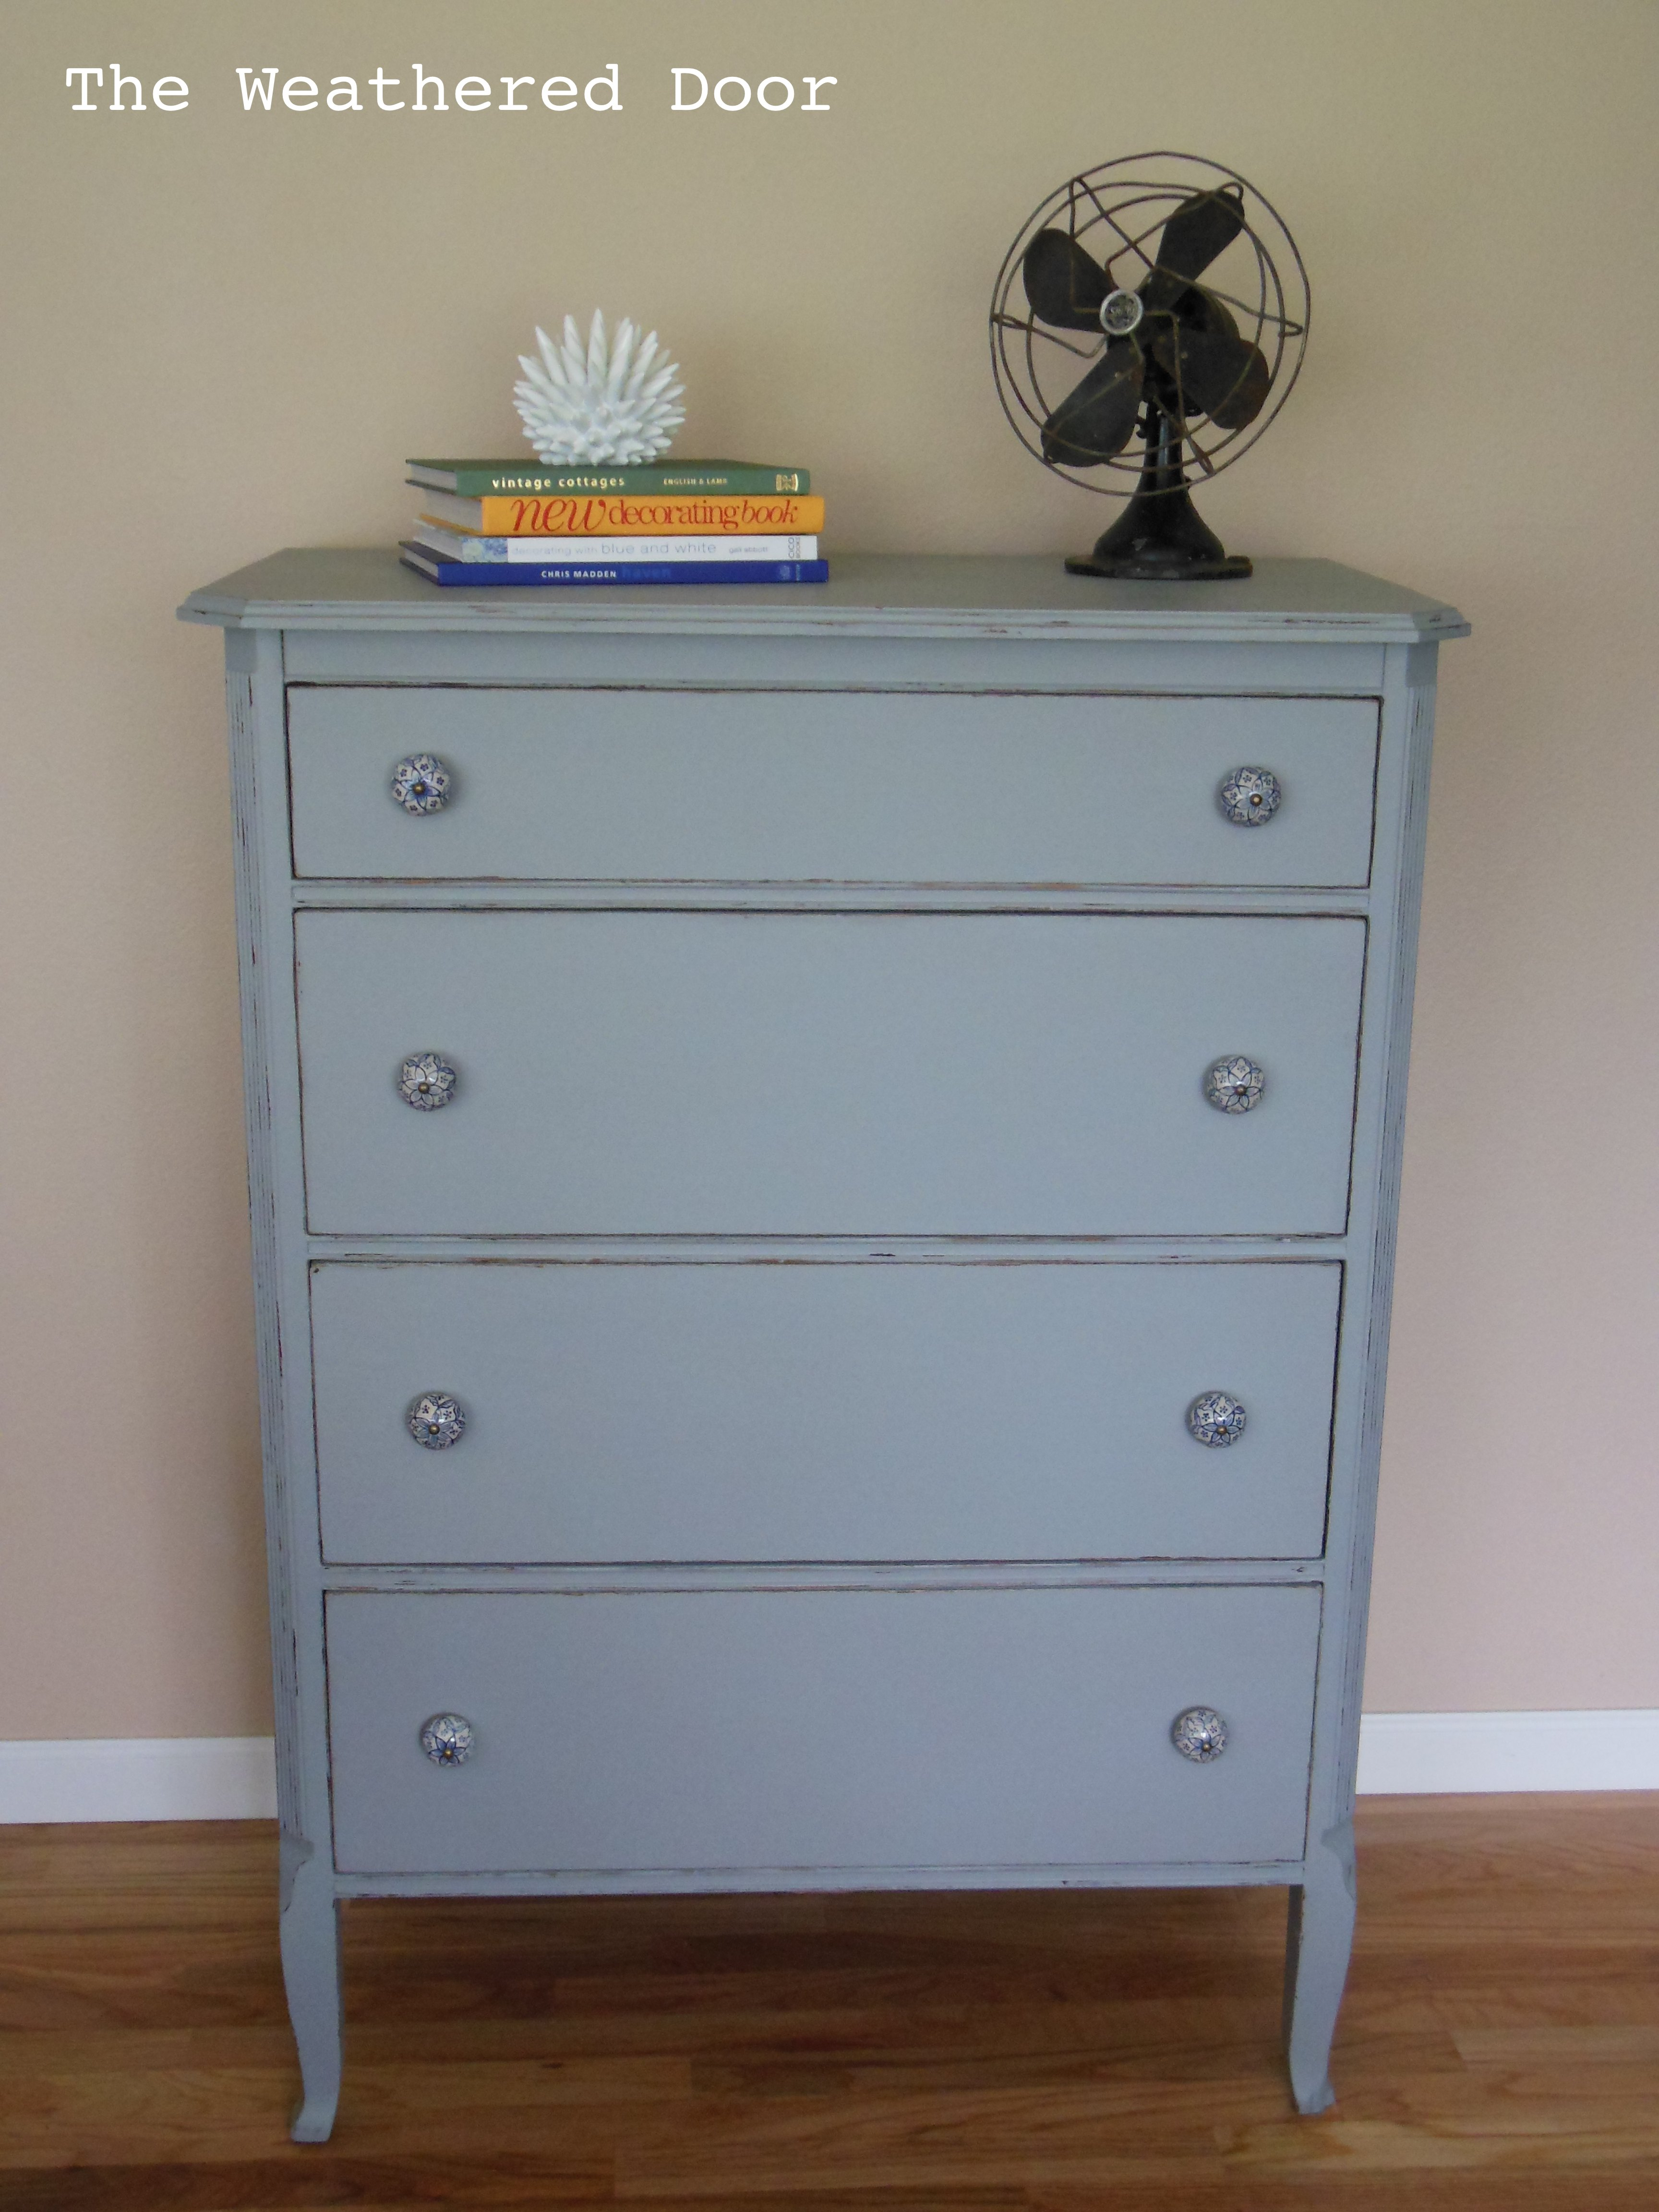 4 Drawer Dresser With Blue And White Pulls The Weathered Door